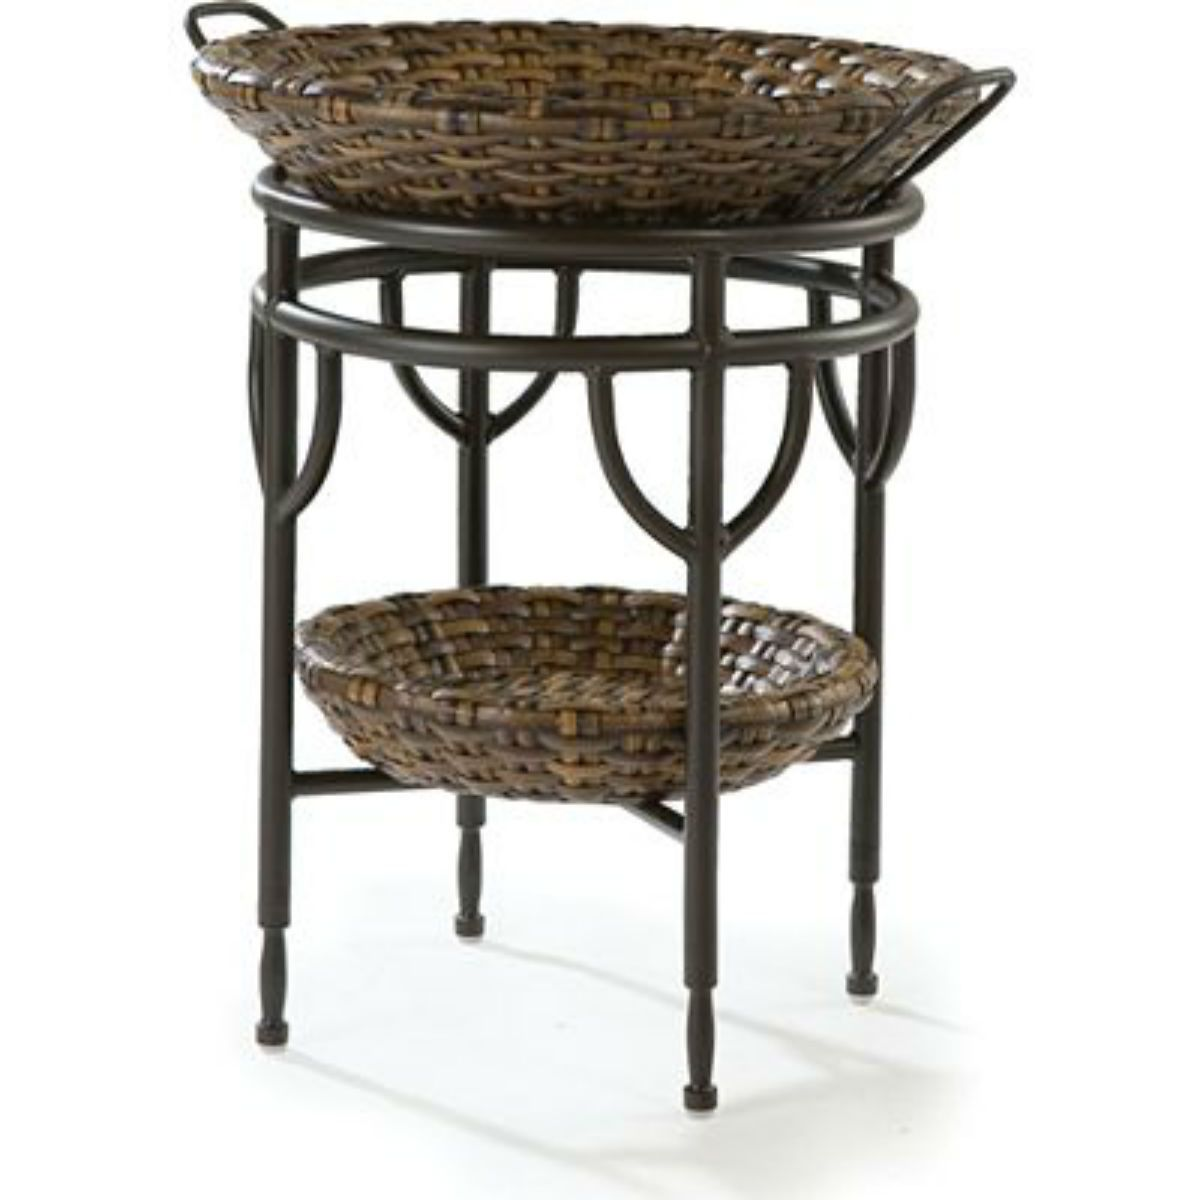 bali hand woven synthetic wicker round accent table french metal storage thresholdtm small white night pier coupons tall square coffee antique exterior doors lucite side gold